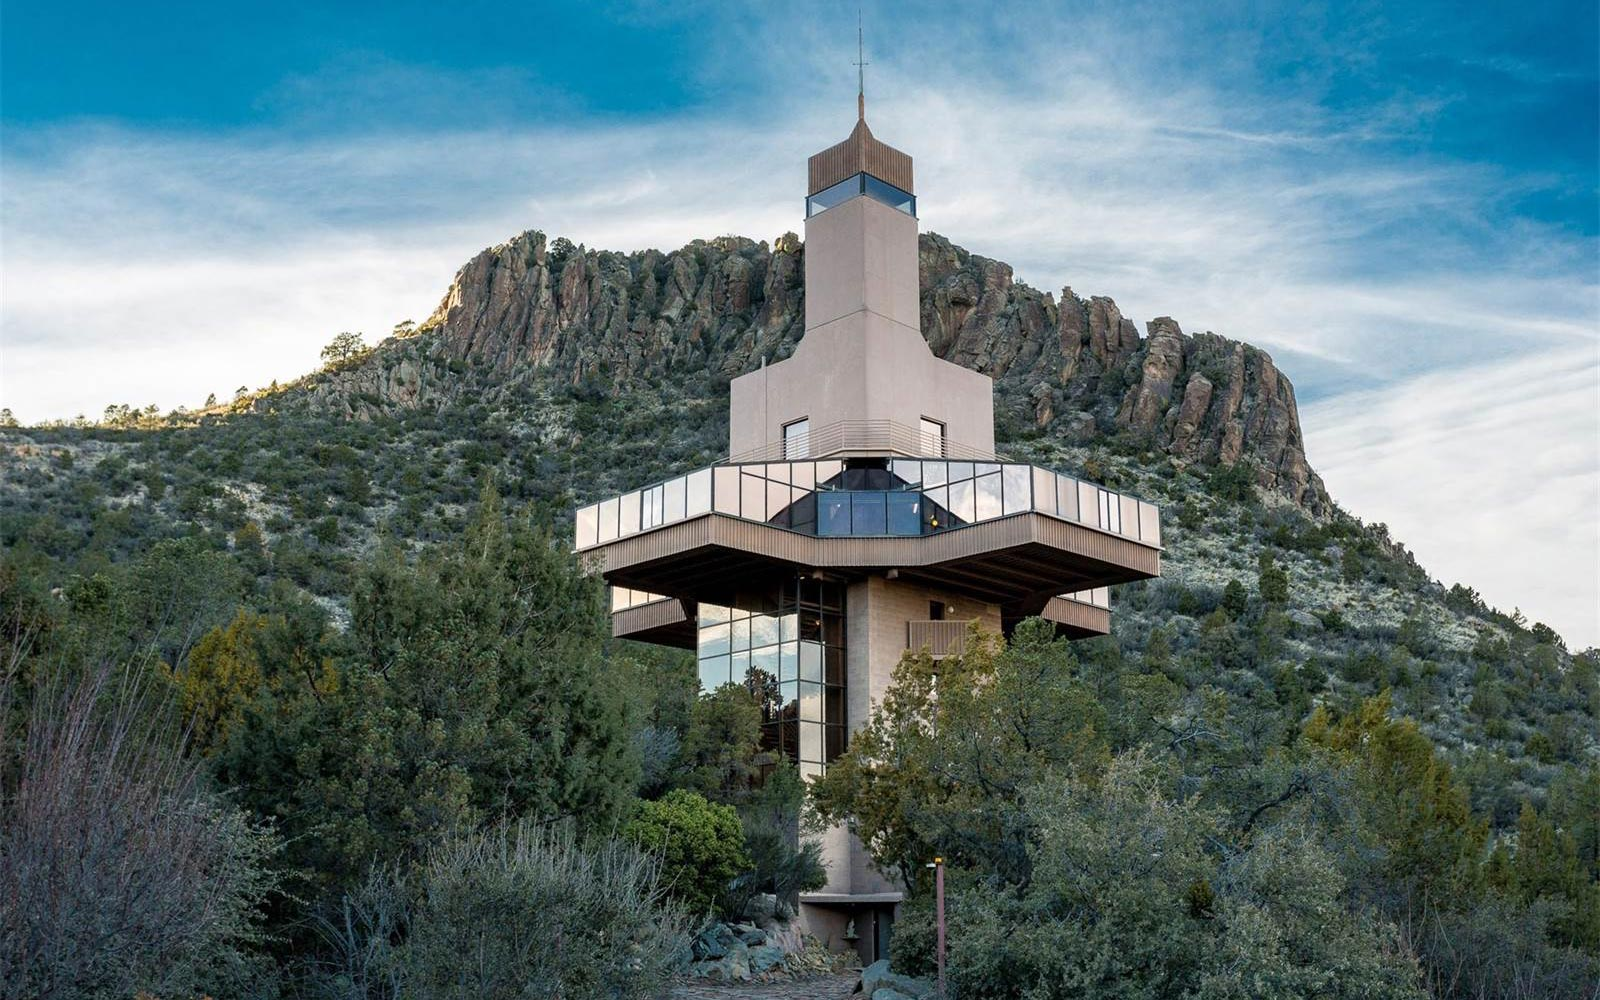 The Tallest Home in North America Is For Sale, and It's Straight Out of a Bond Movie